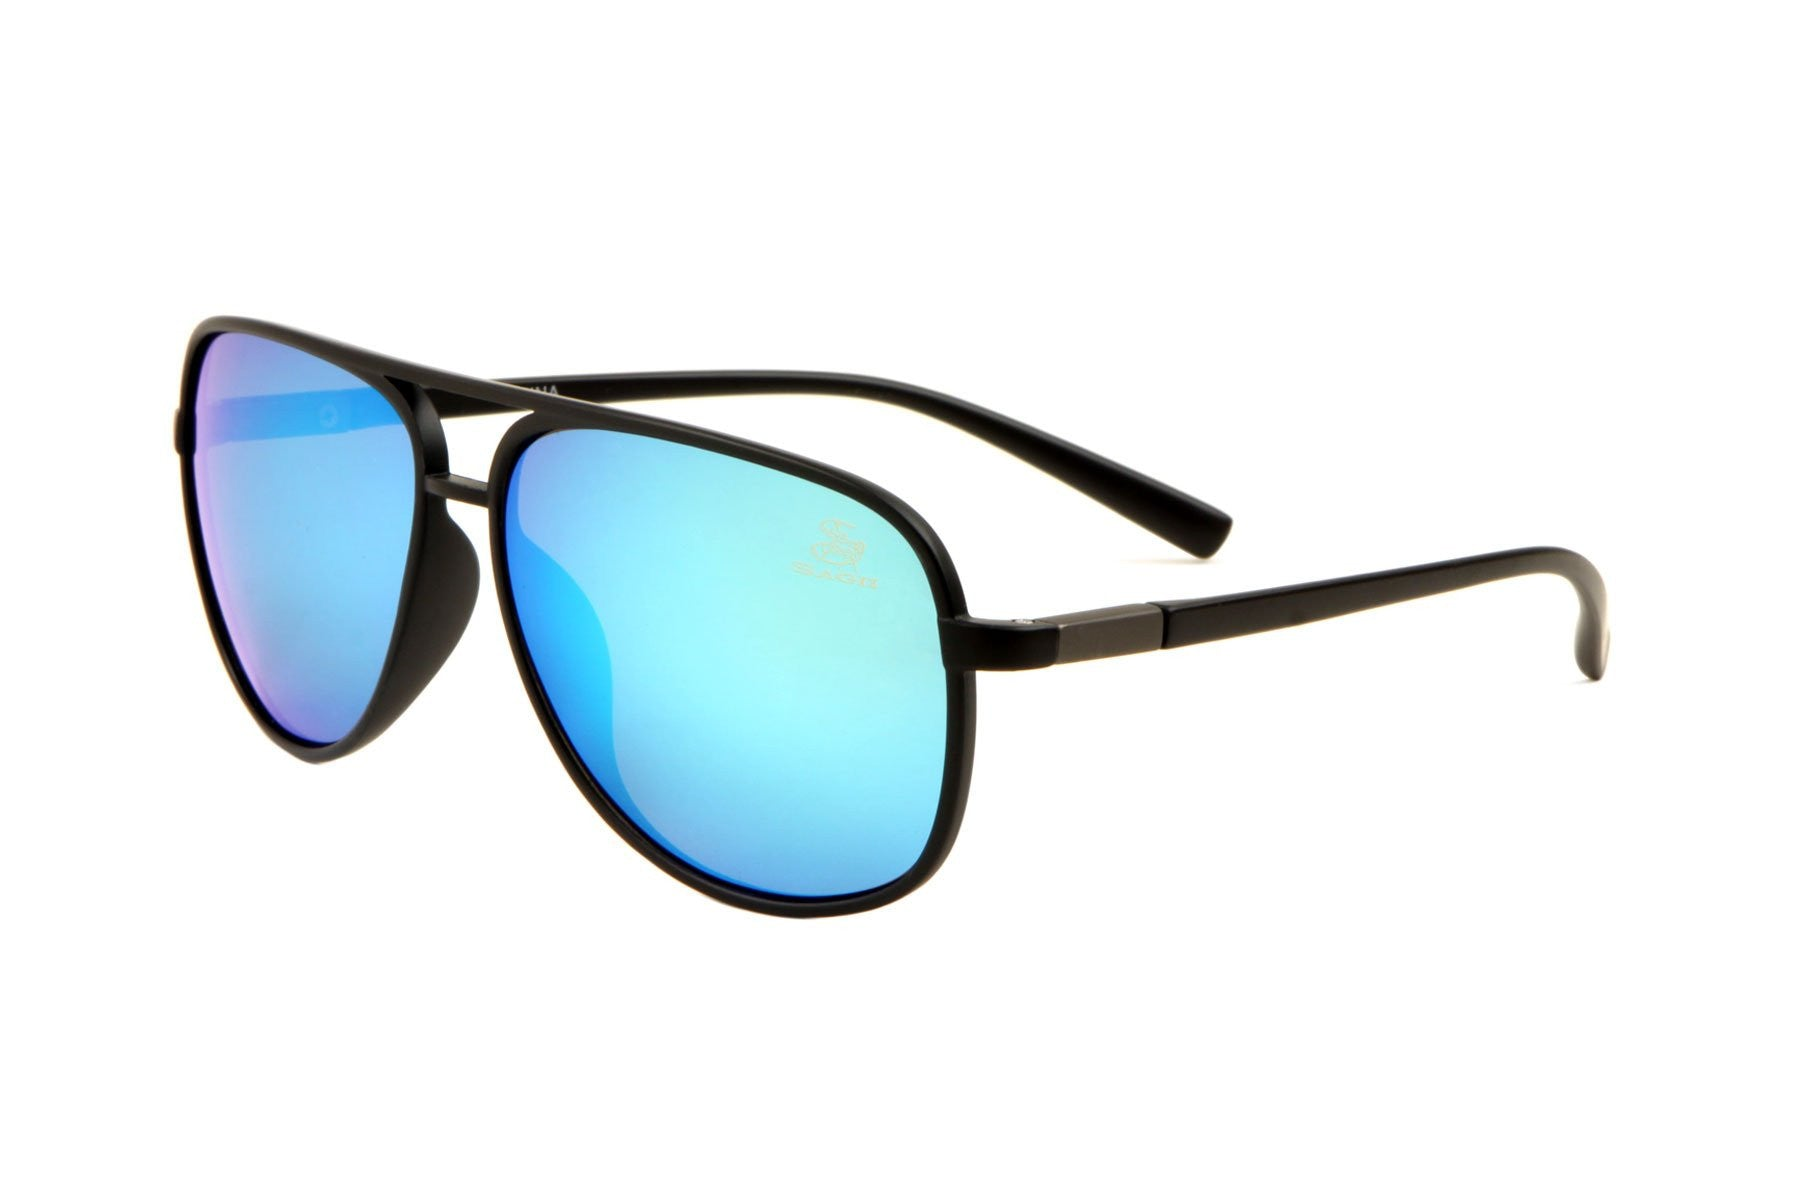 Athleisure SAGII POLARIZED AVIATORS Blue | Sunglasses | Sagii Store | 219.00 USD